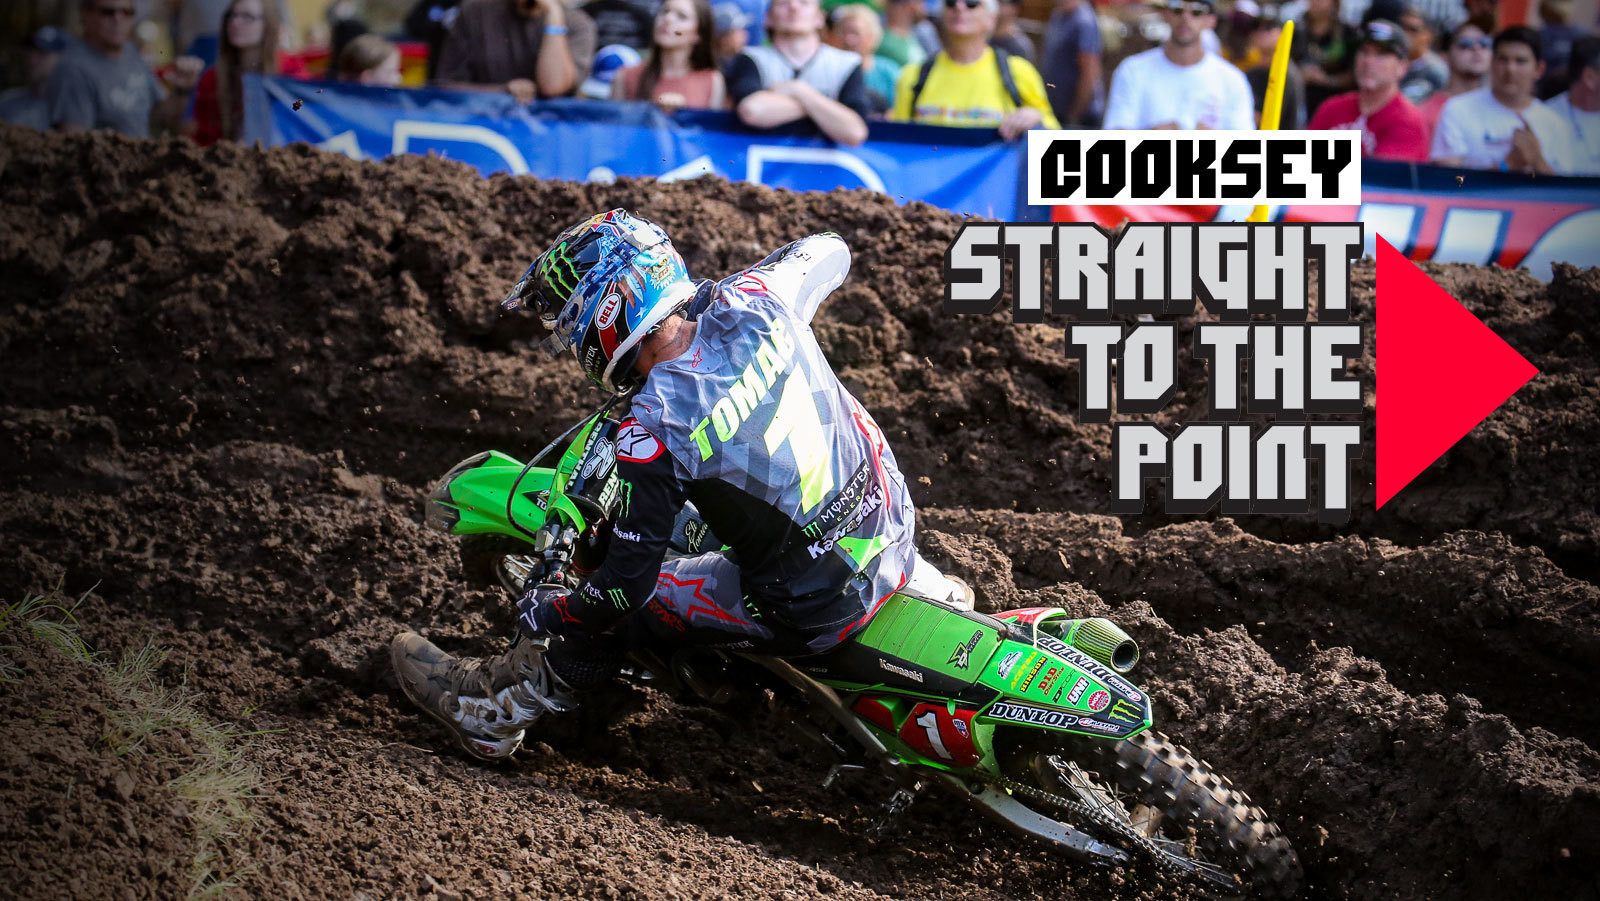 Cooksey Straight To The Point: Kawasaki, MXoN, and Patriotism